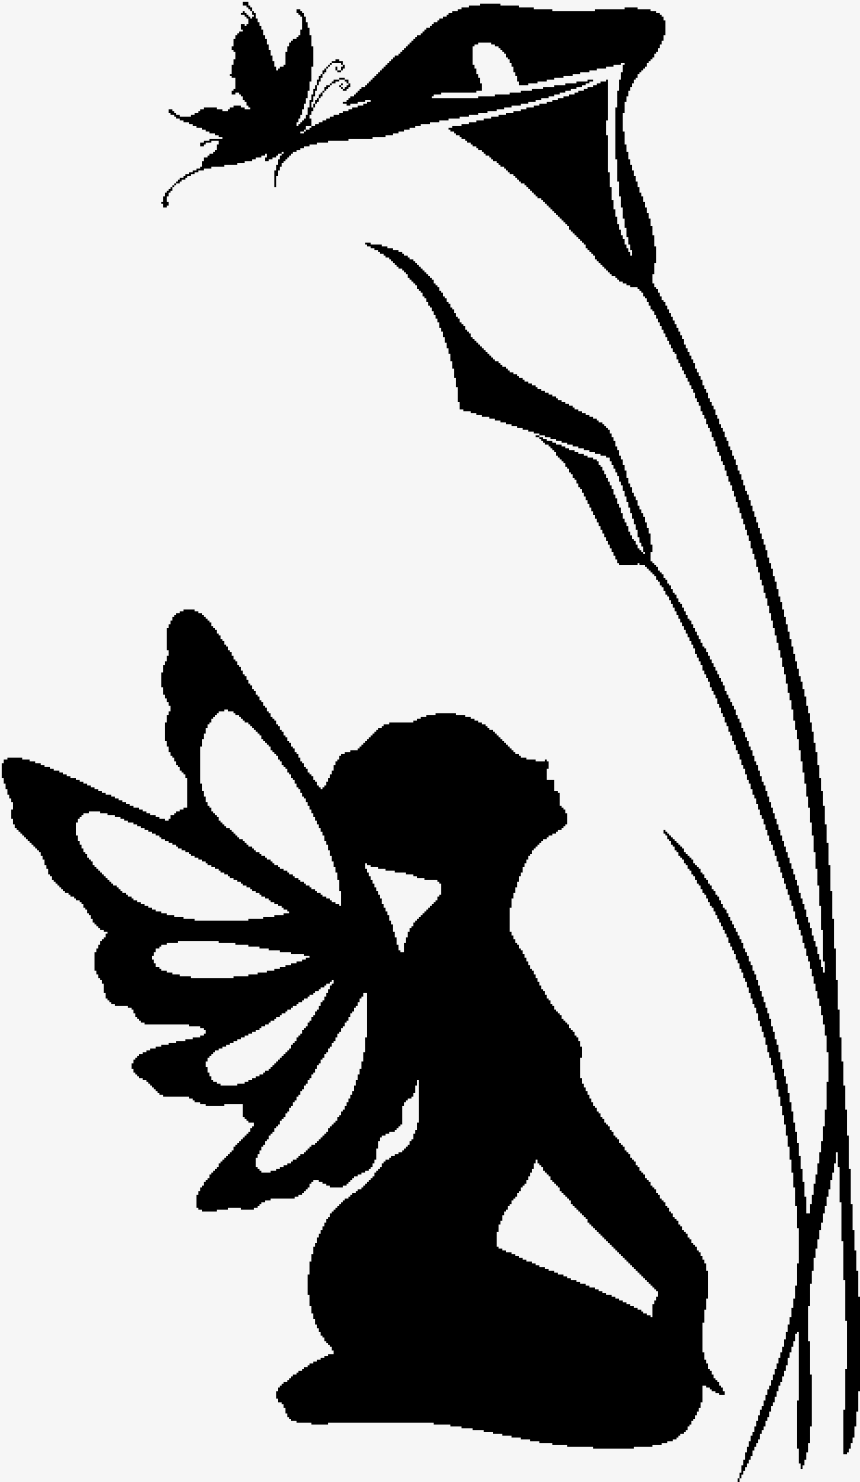 Fairy Silhouette Png Fairy Free Printable Silhouette Templates Hd Png Download 7609959 Png Images On Pngarea